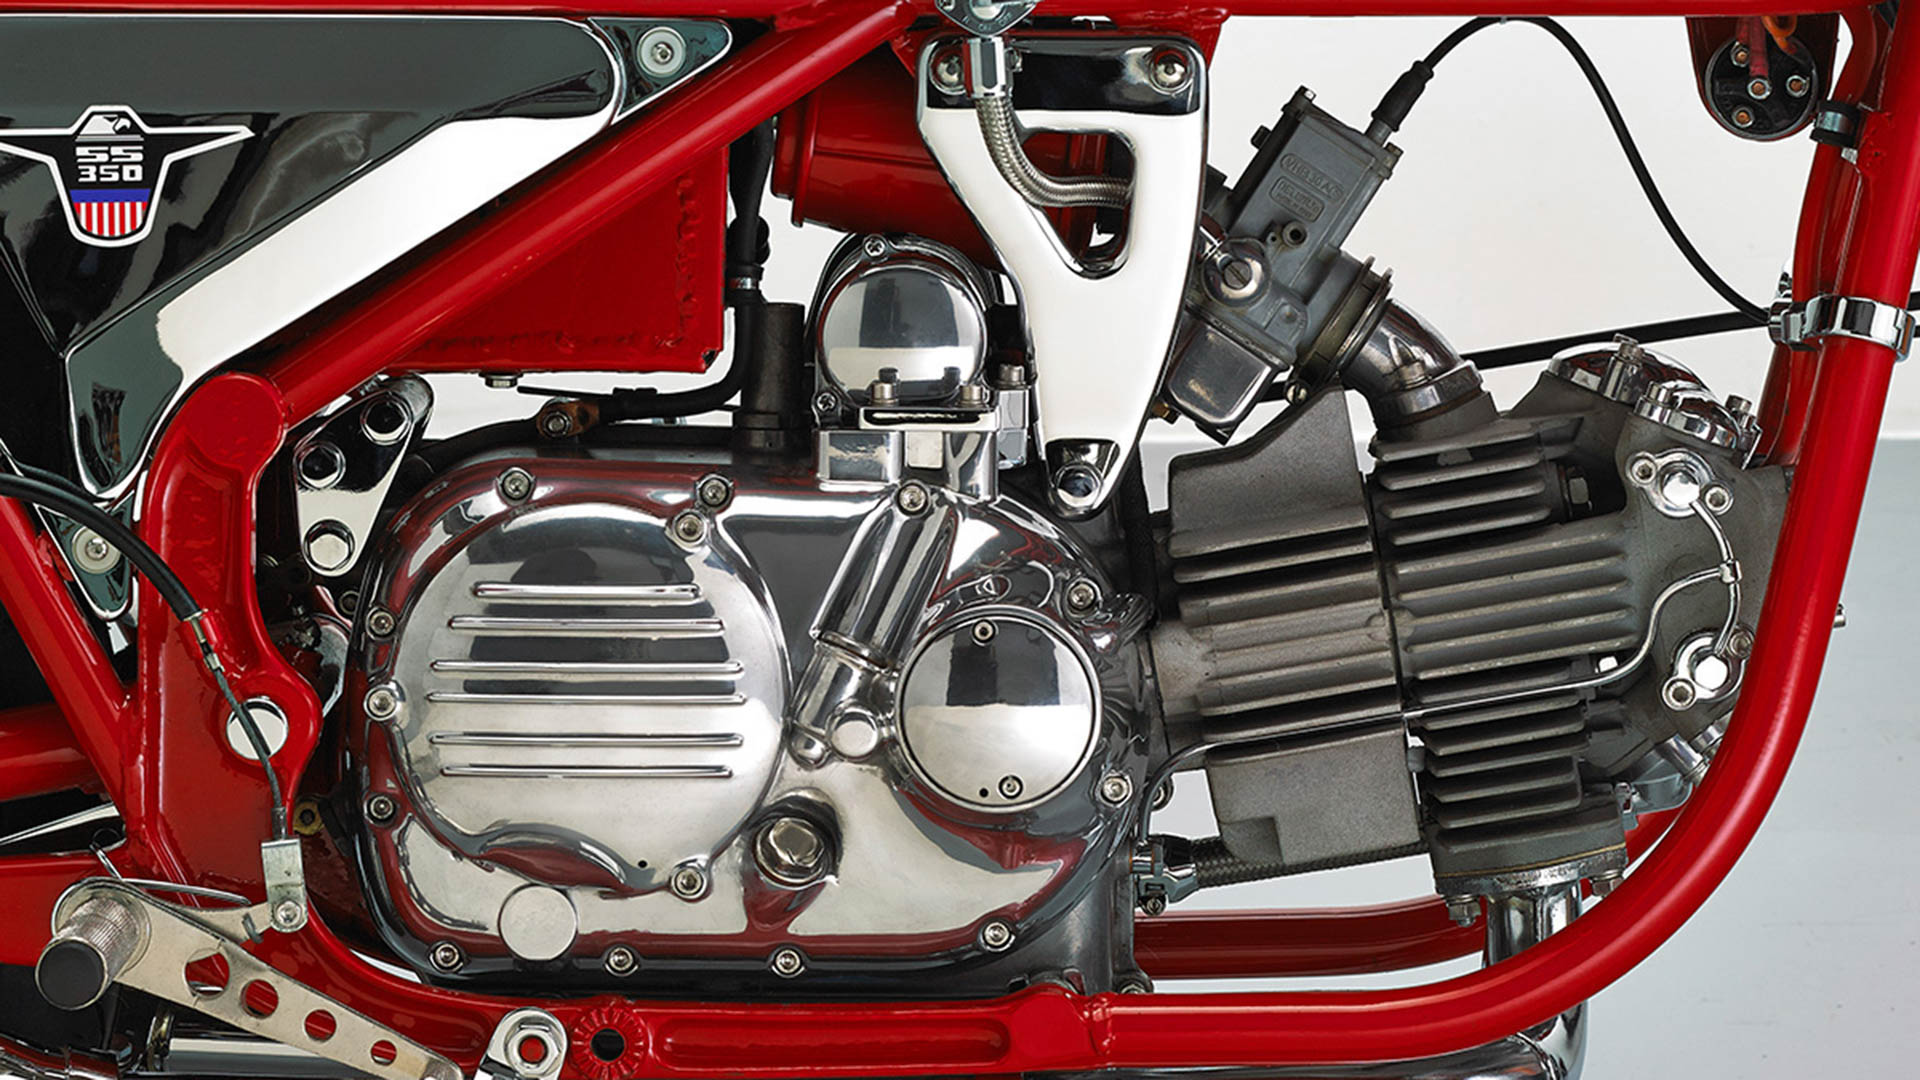 Aermacchi Motorcycle Parts